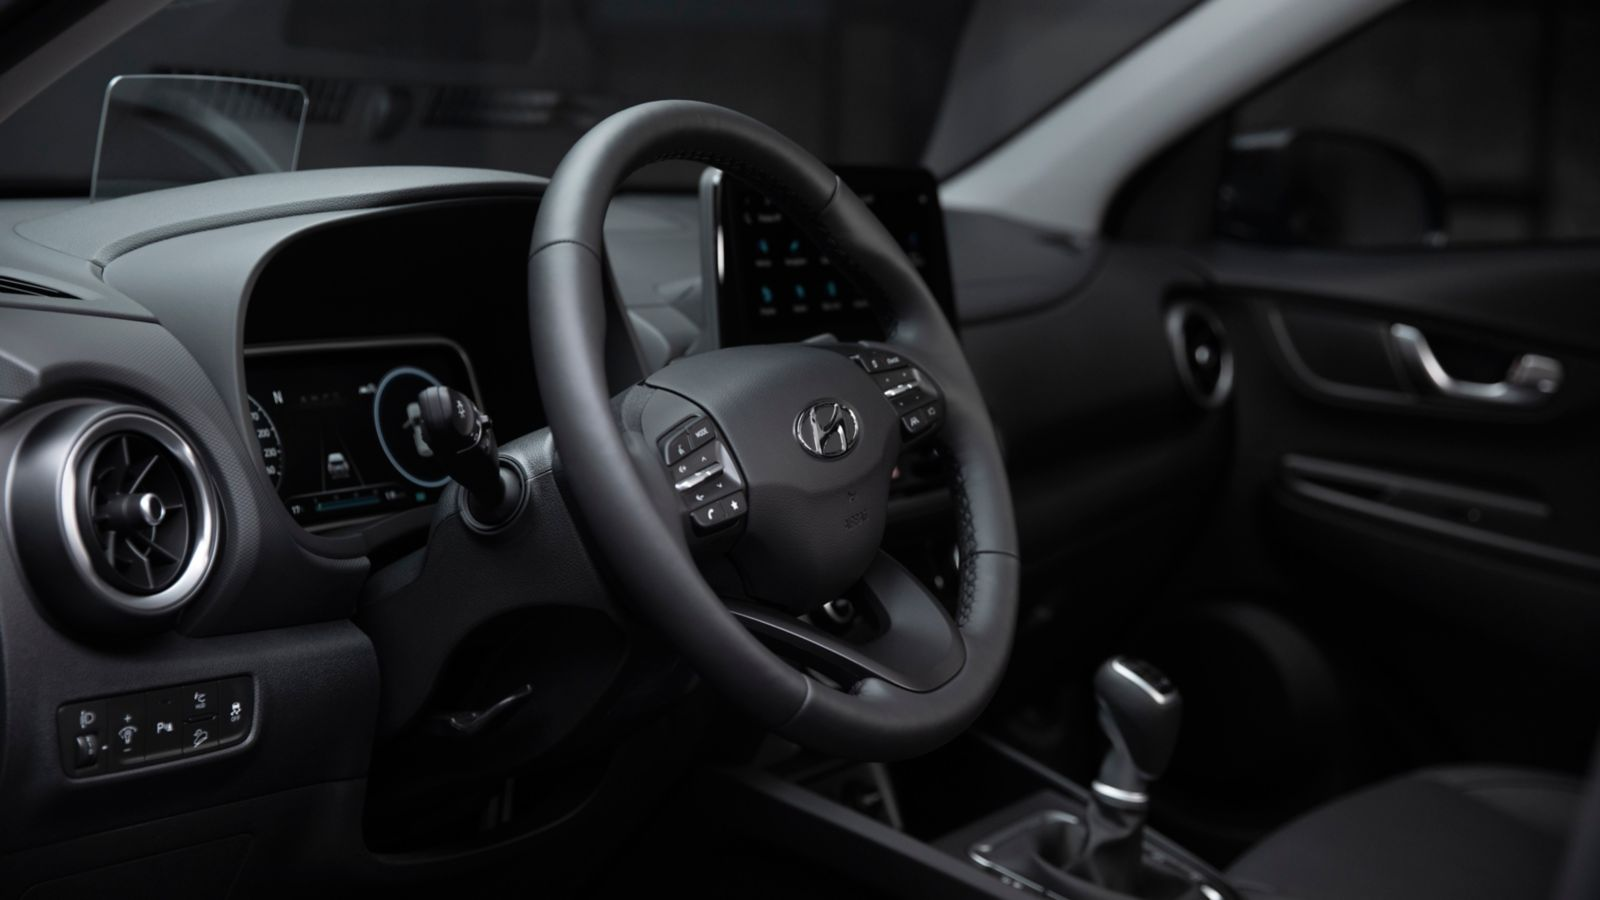 Interior view in the new Hyundai Kona Hybrid compact SUV showing the co-driver using Bluelink®.